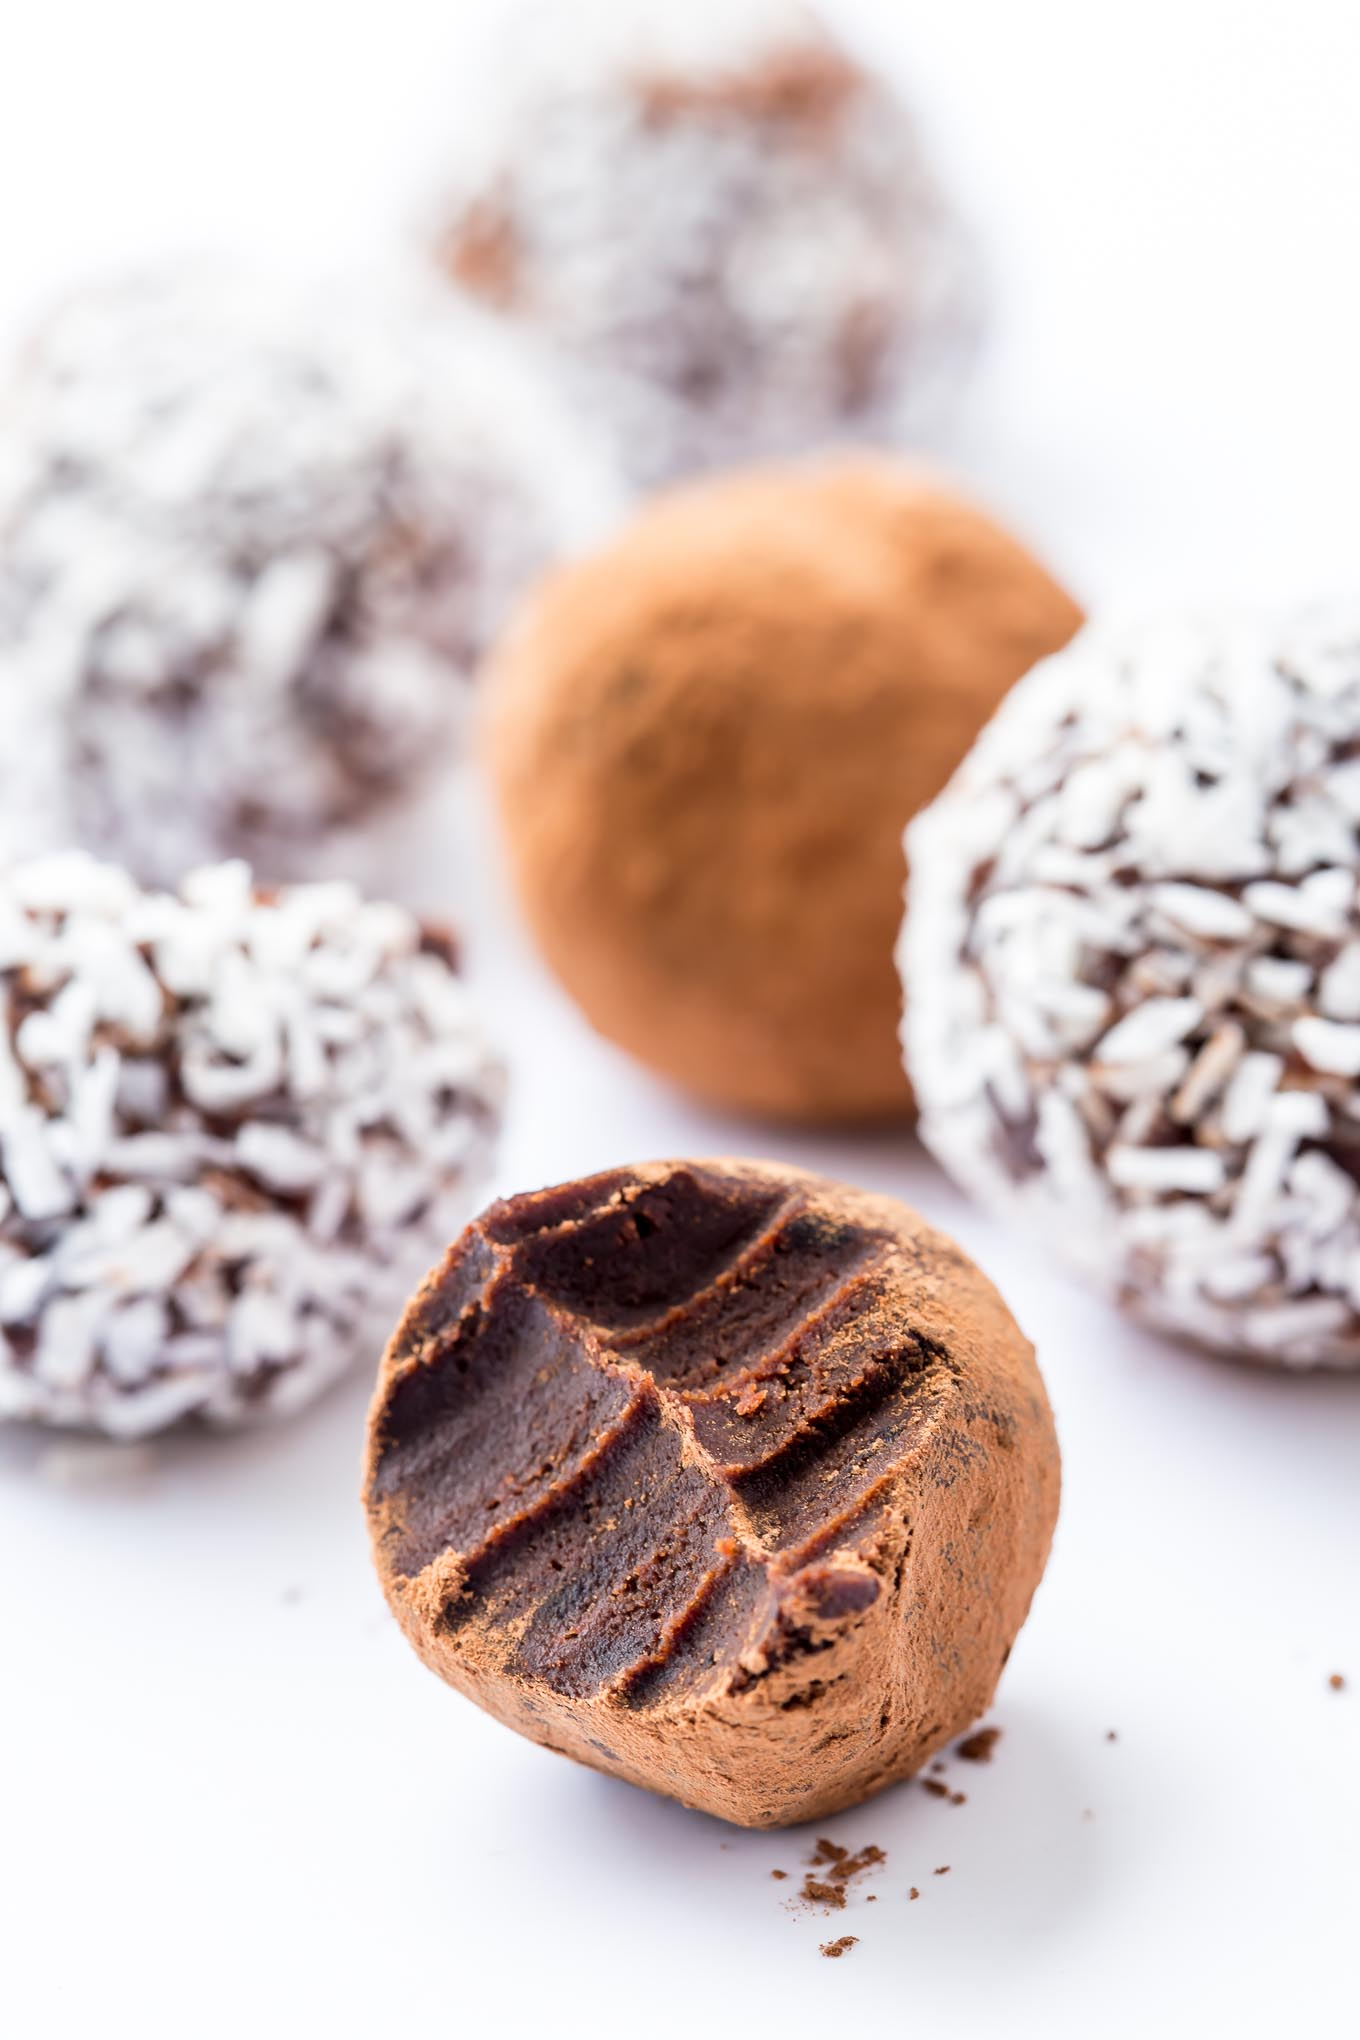 BLACK GARLIC CHOCOLATE TRUFFLES | GARLIC MATTERS